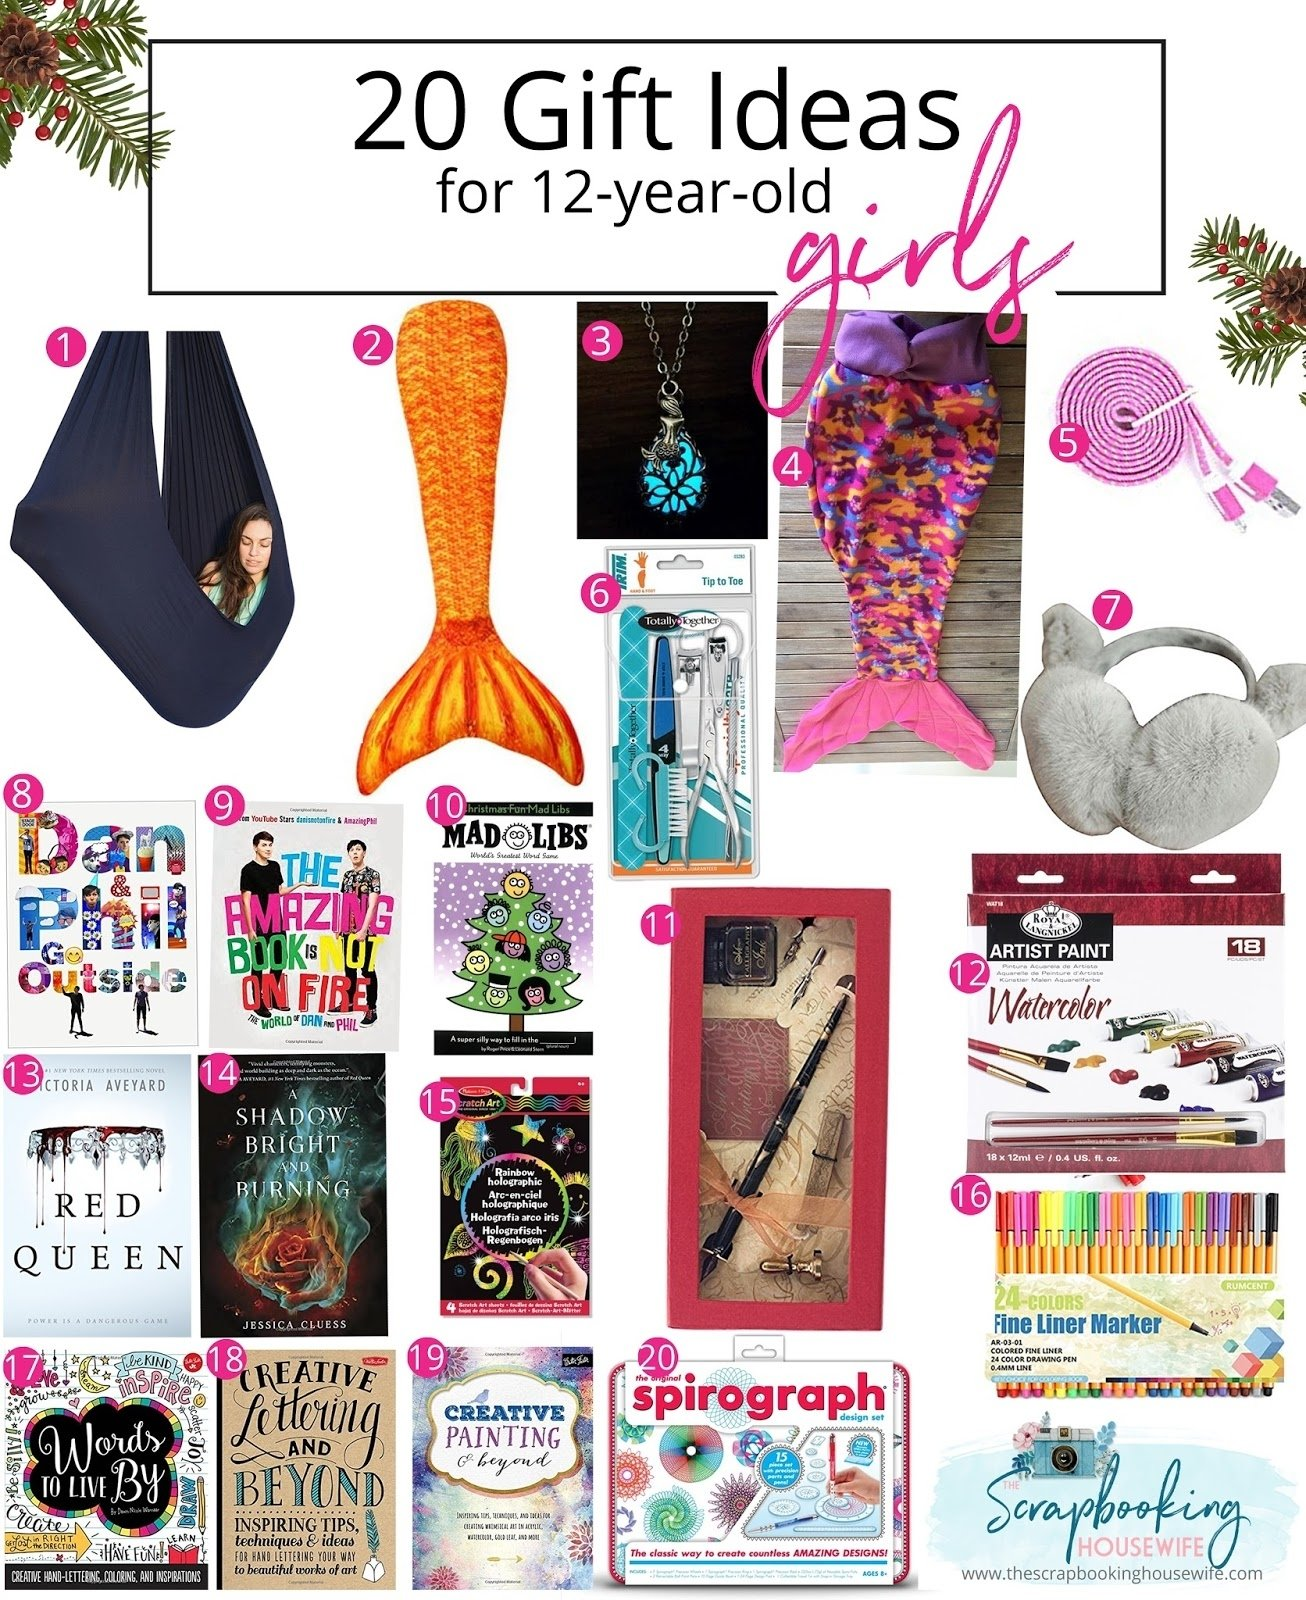 ellabella designs: 20 gift ideas for 12-year-old tween girls